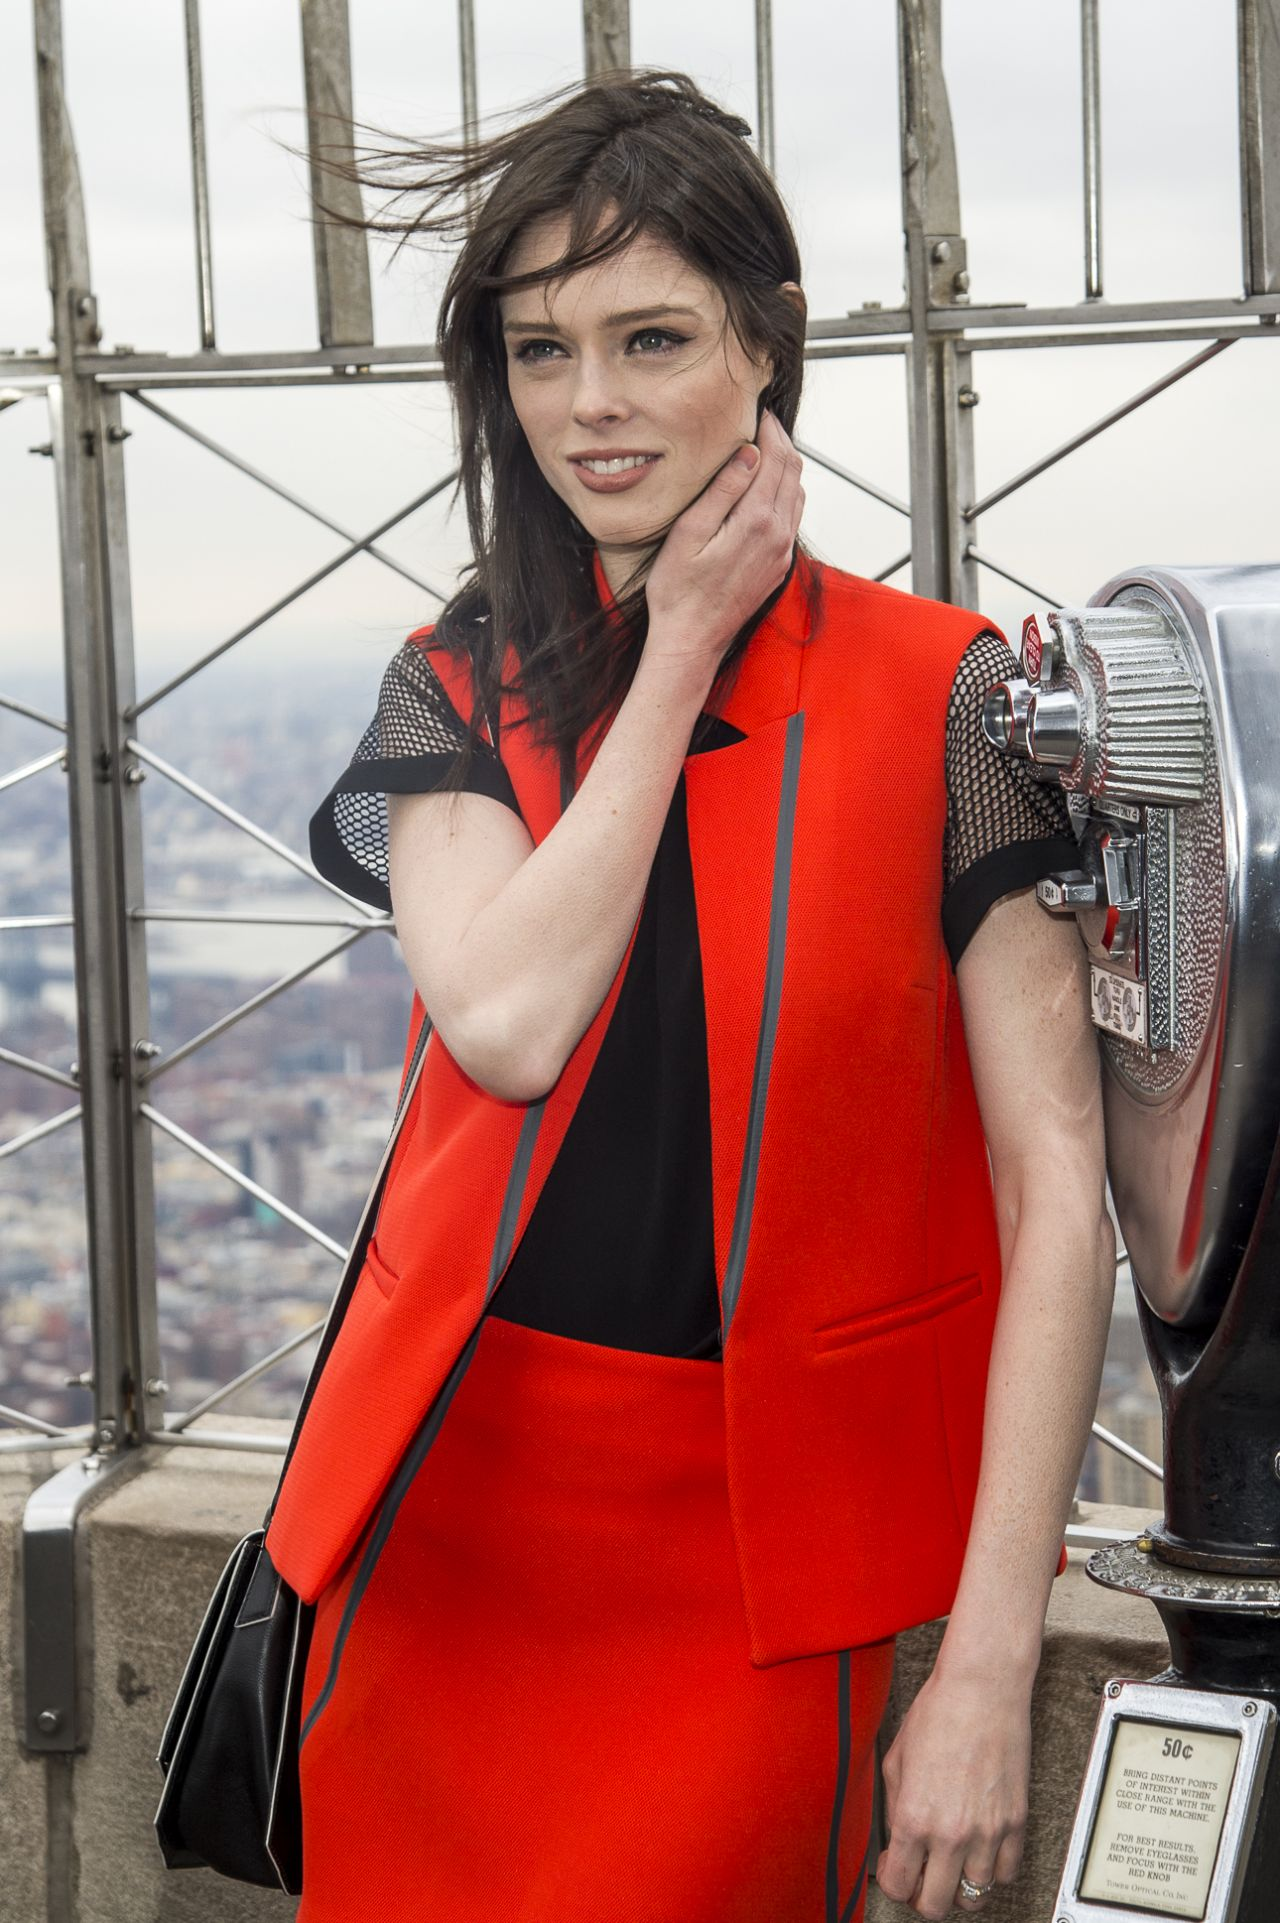 coco-rocha-empire-state-building-2-17-2016-6